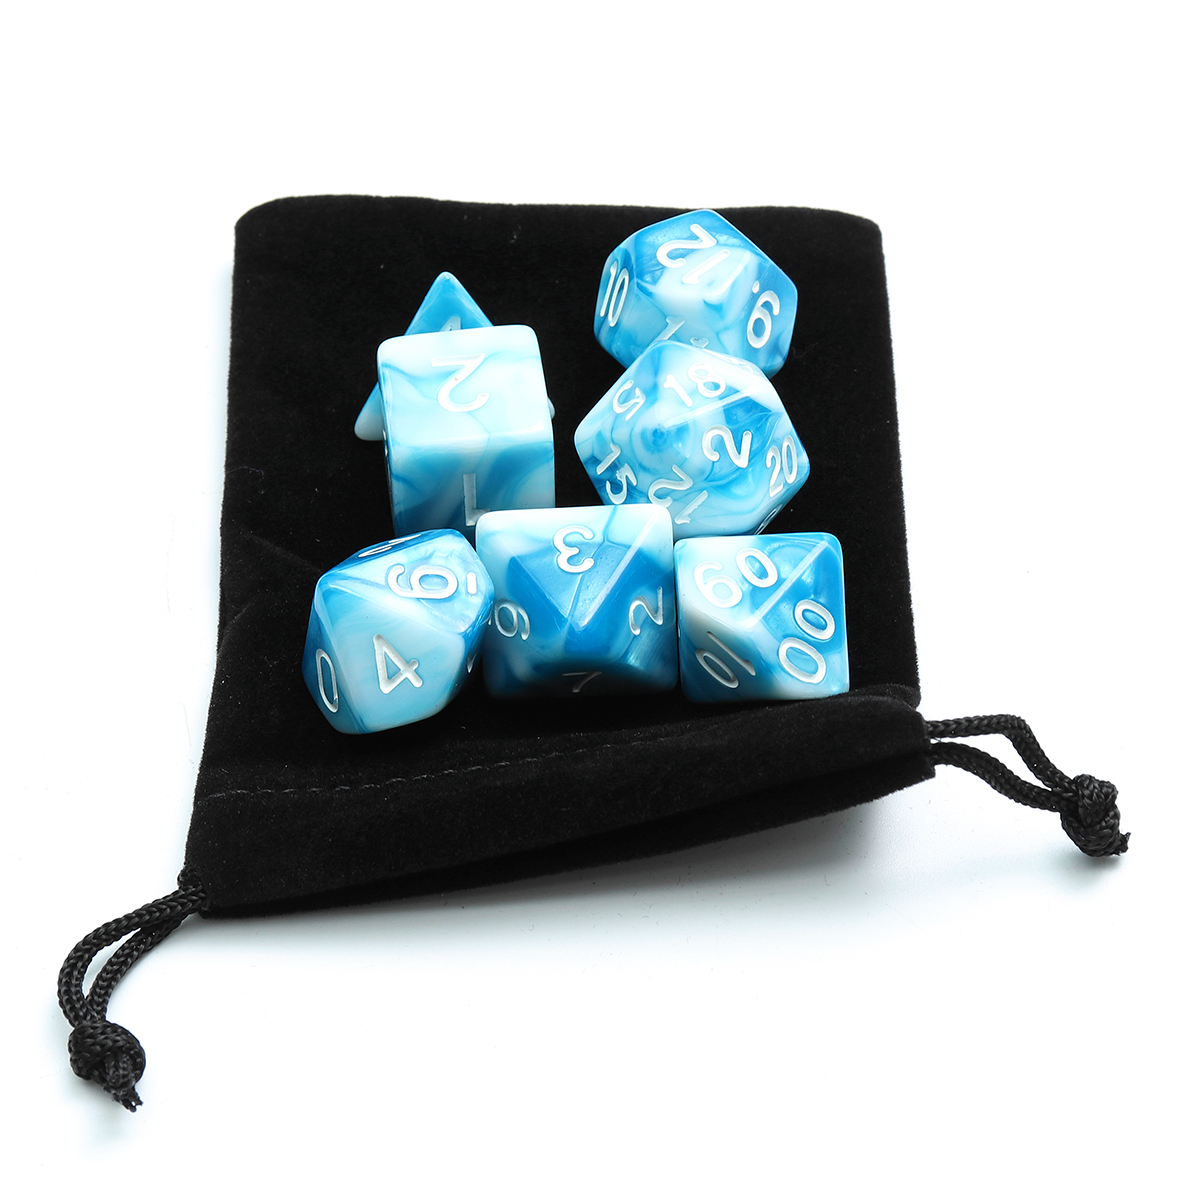 49/56/70Pcs Polyhedral Dices for Dungeons & Dragons Desktop Games With Storage Bags